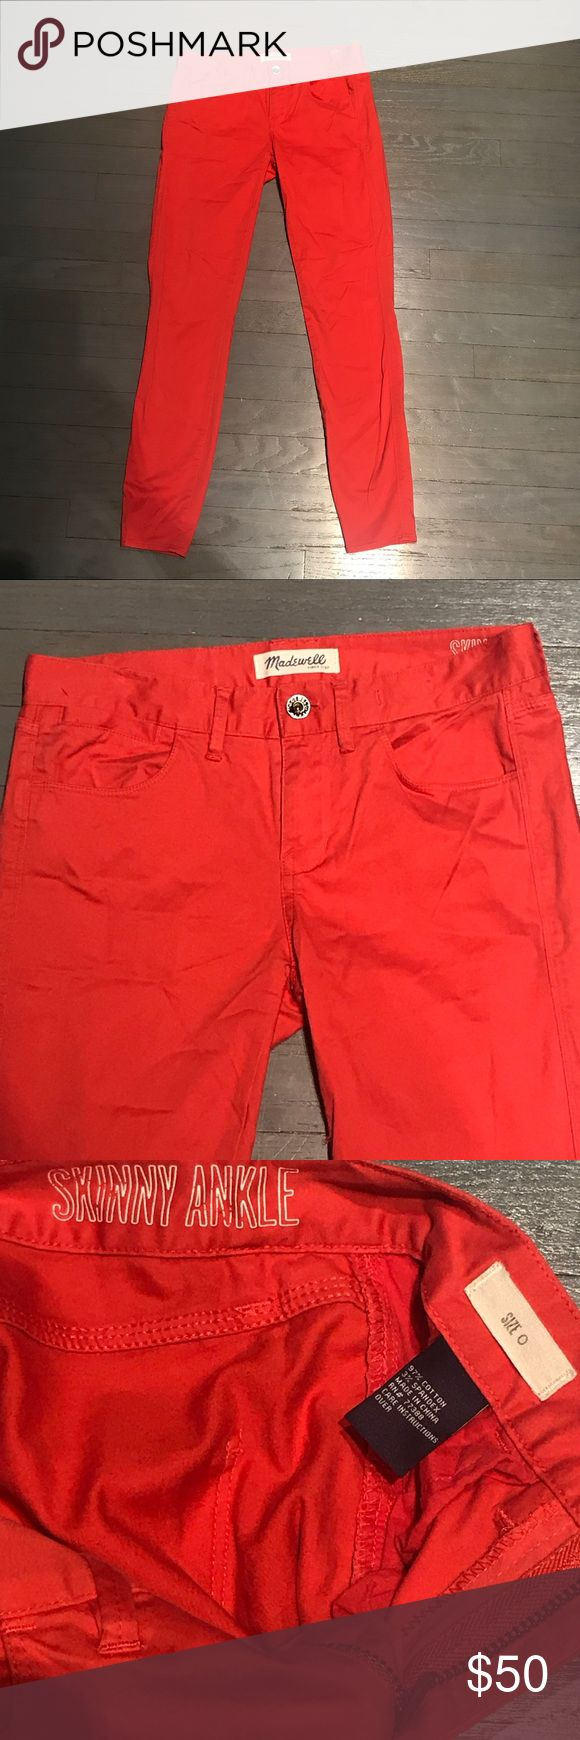 Madewell Skinny Ankle Nantucket Red Jeans Madewell Skinny Ankle Nantucket Red Jeans Madewell Jeans Skinny